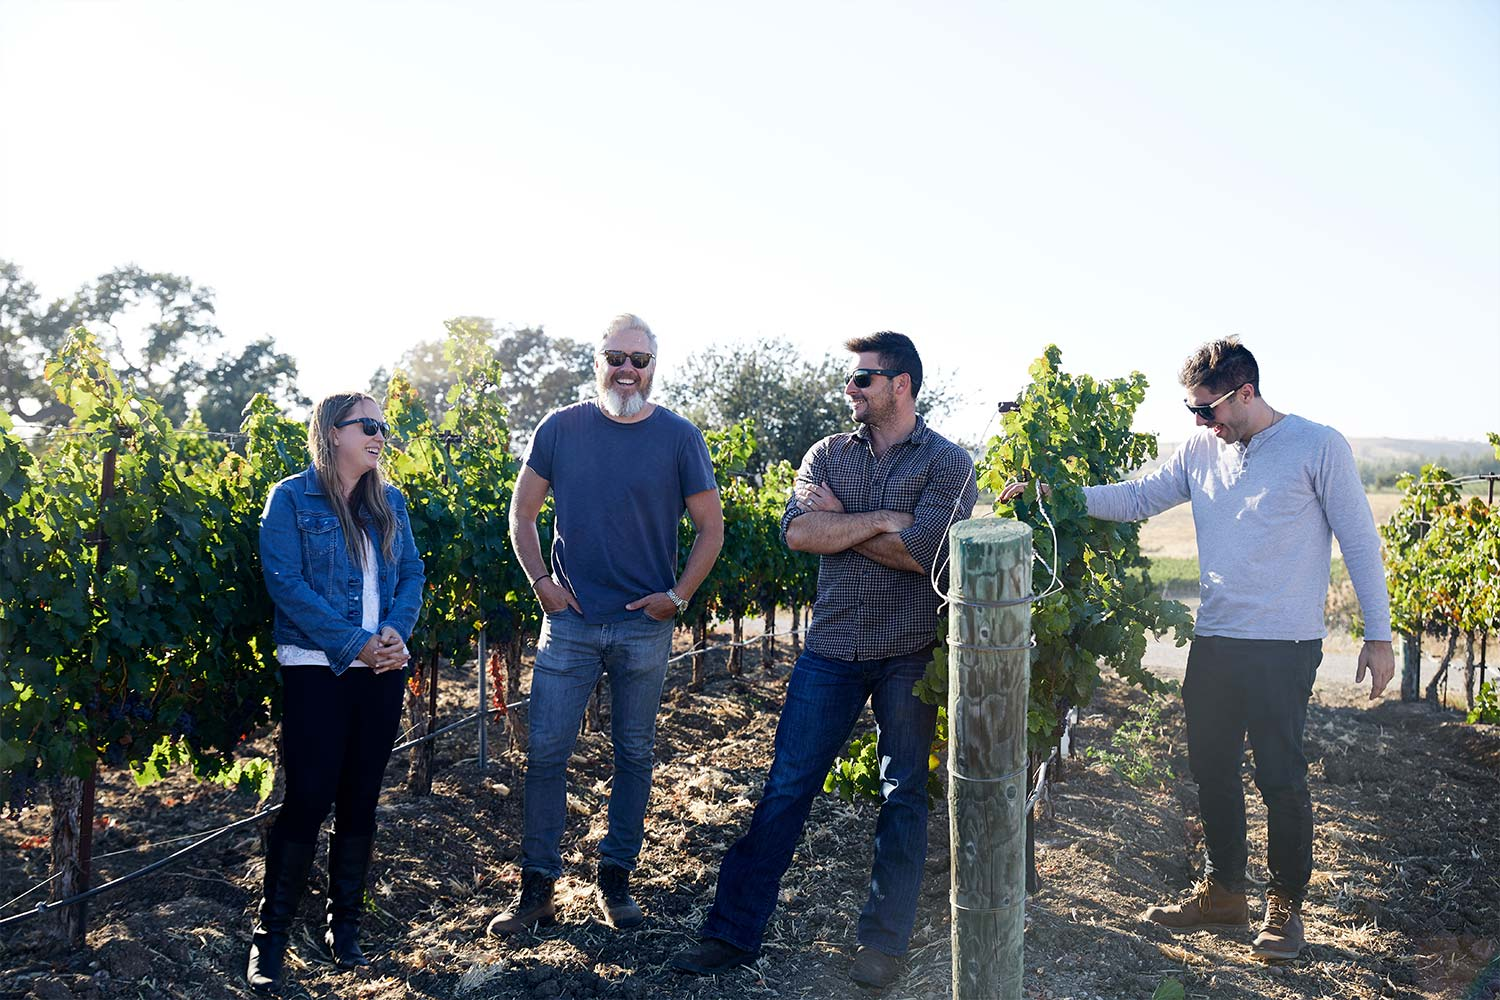 A Note From the Winemakers